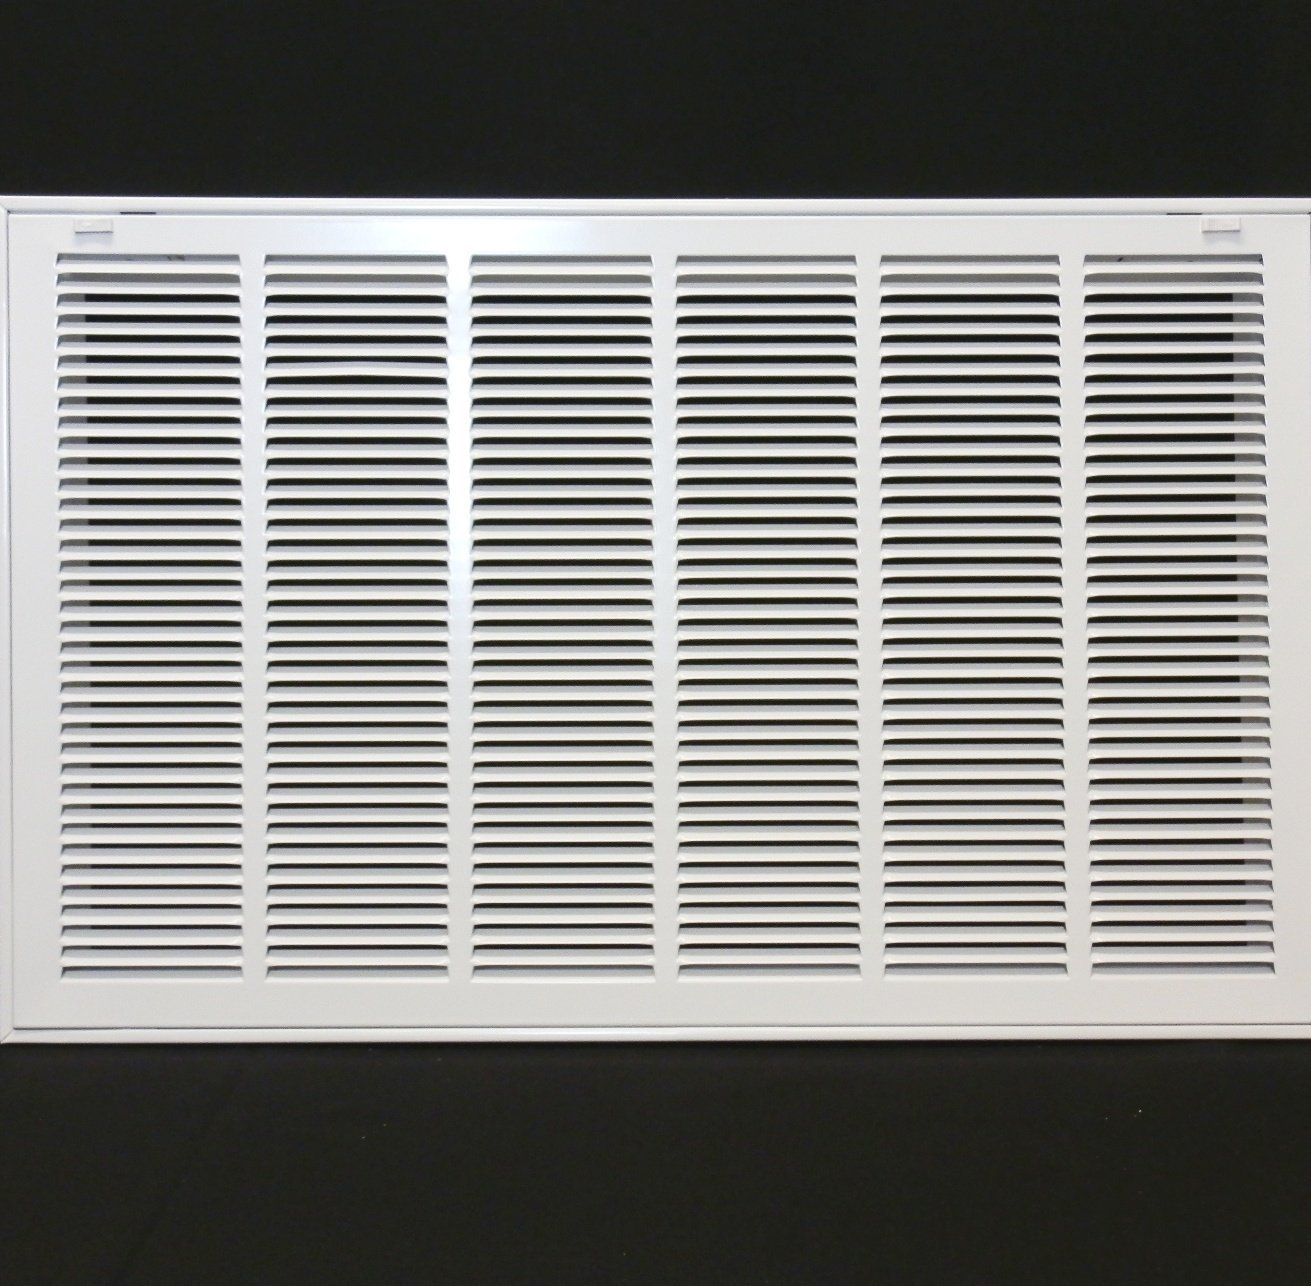 "30"" X 20 Steel Return Air Filter Grille for 1"" Filter - Removable Face/Door - HVAC Duct Cover - Flat Stamped Face - White [Outer Dimensions: 32.5 X 21.75]"